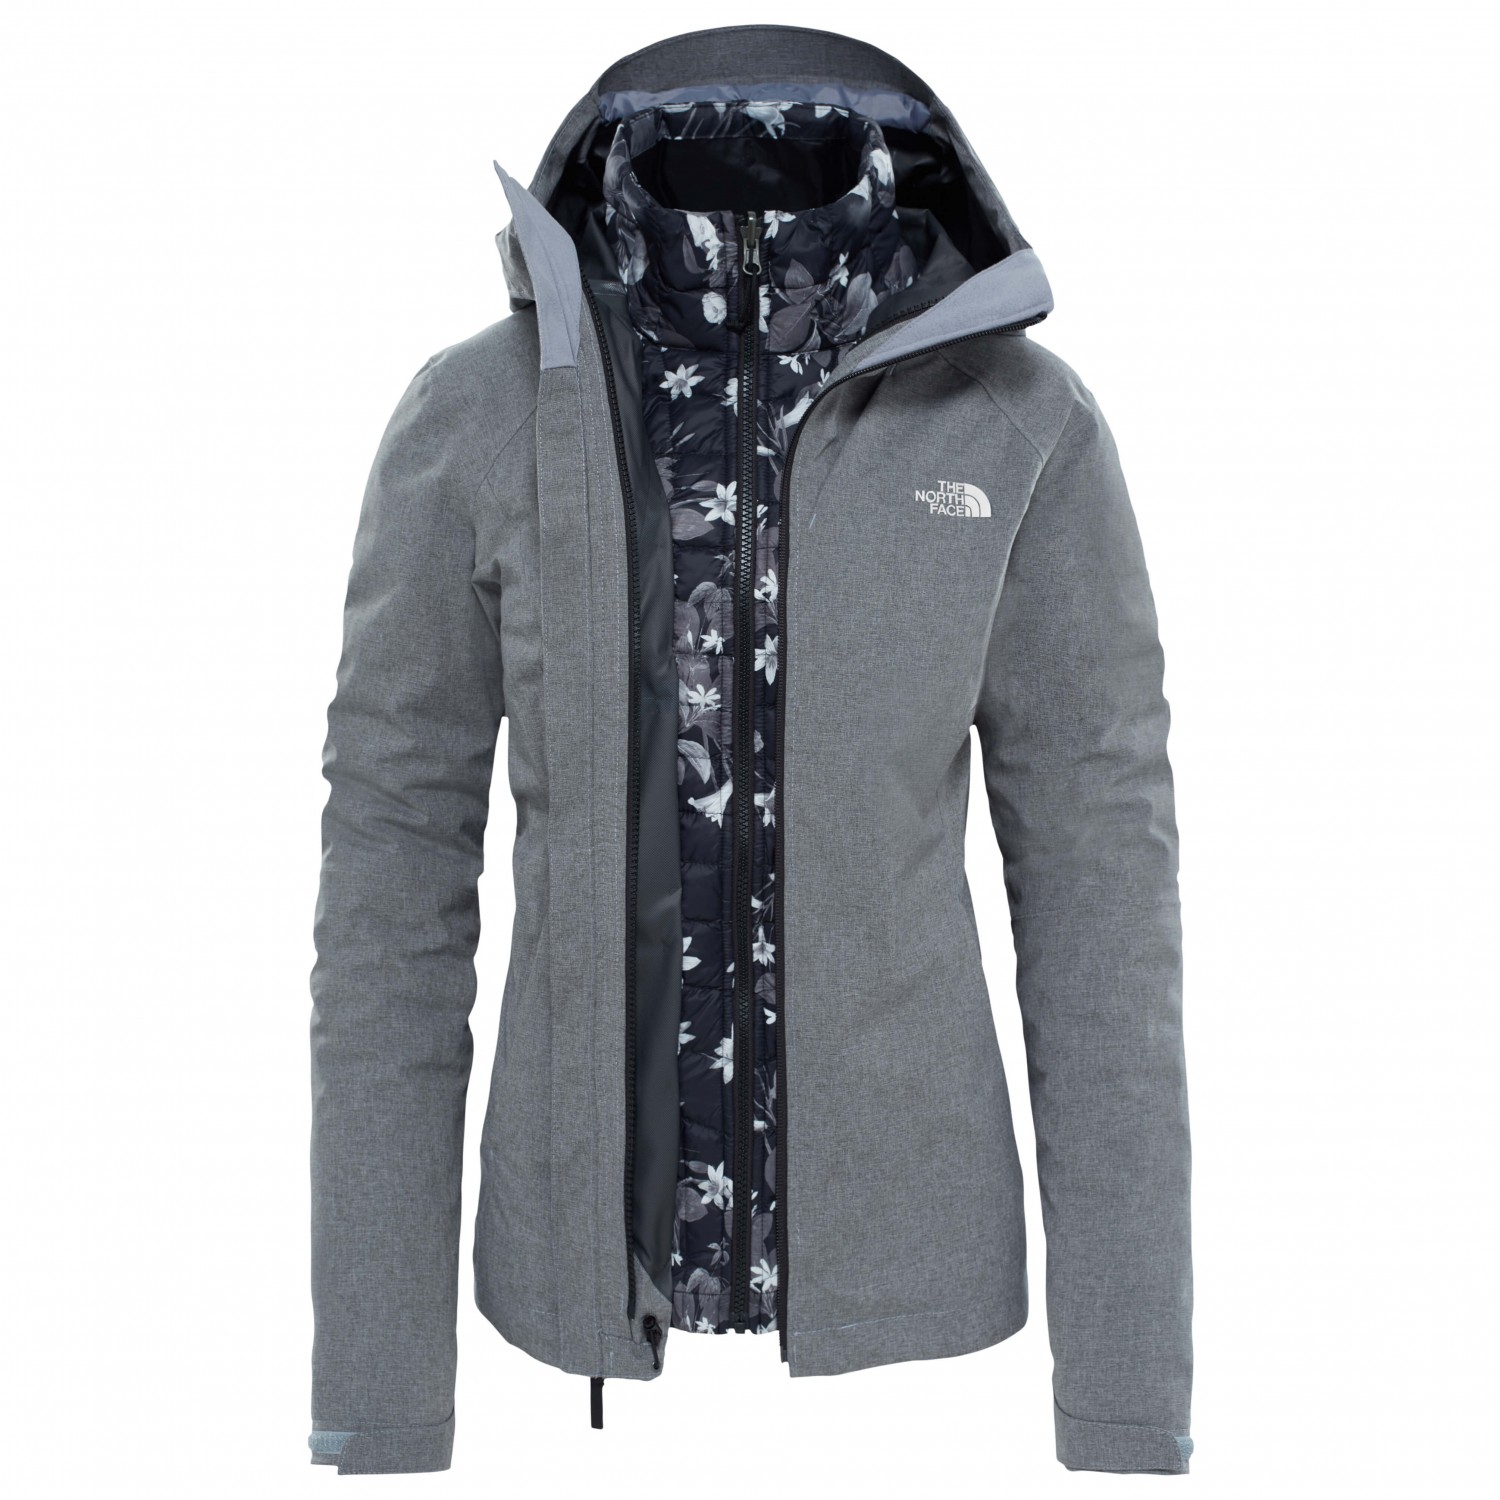 b6c92836c7 ... The North Face - Women's Thermoball Triclimate Jacket - Veste doublée  ...